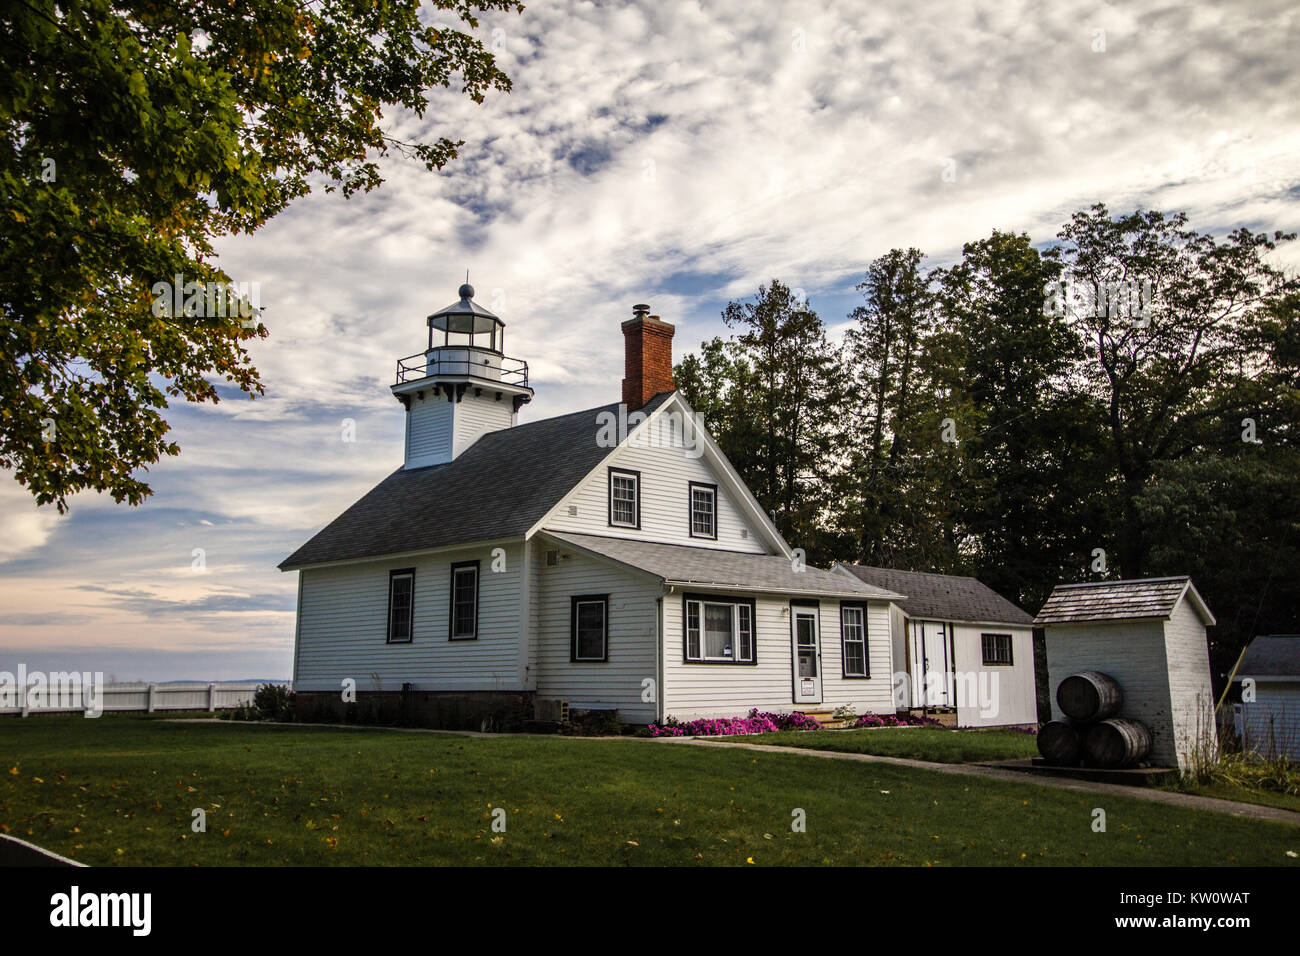 Old Mission Point Lighthouse In Michigan. The Old Mission Point lighthouse is a popular landmark in Traverse City, Stock Photo